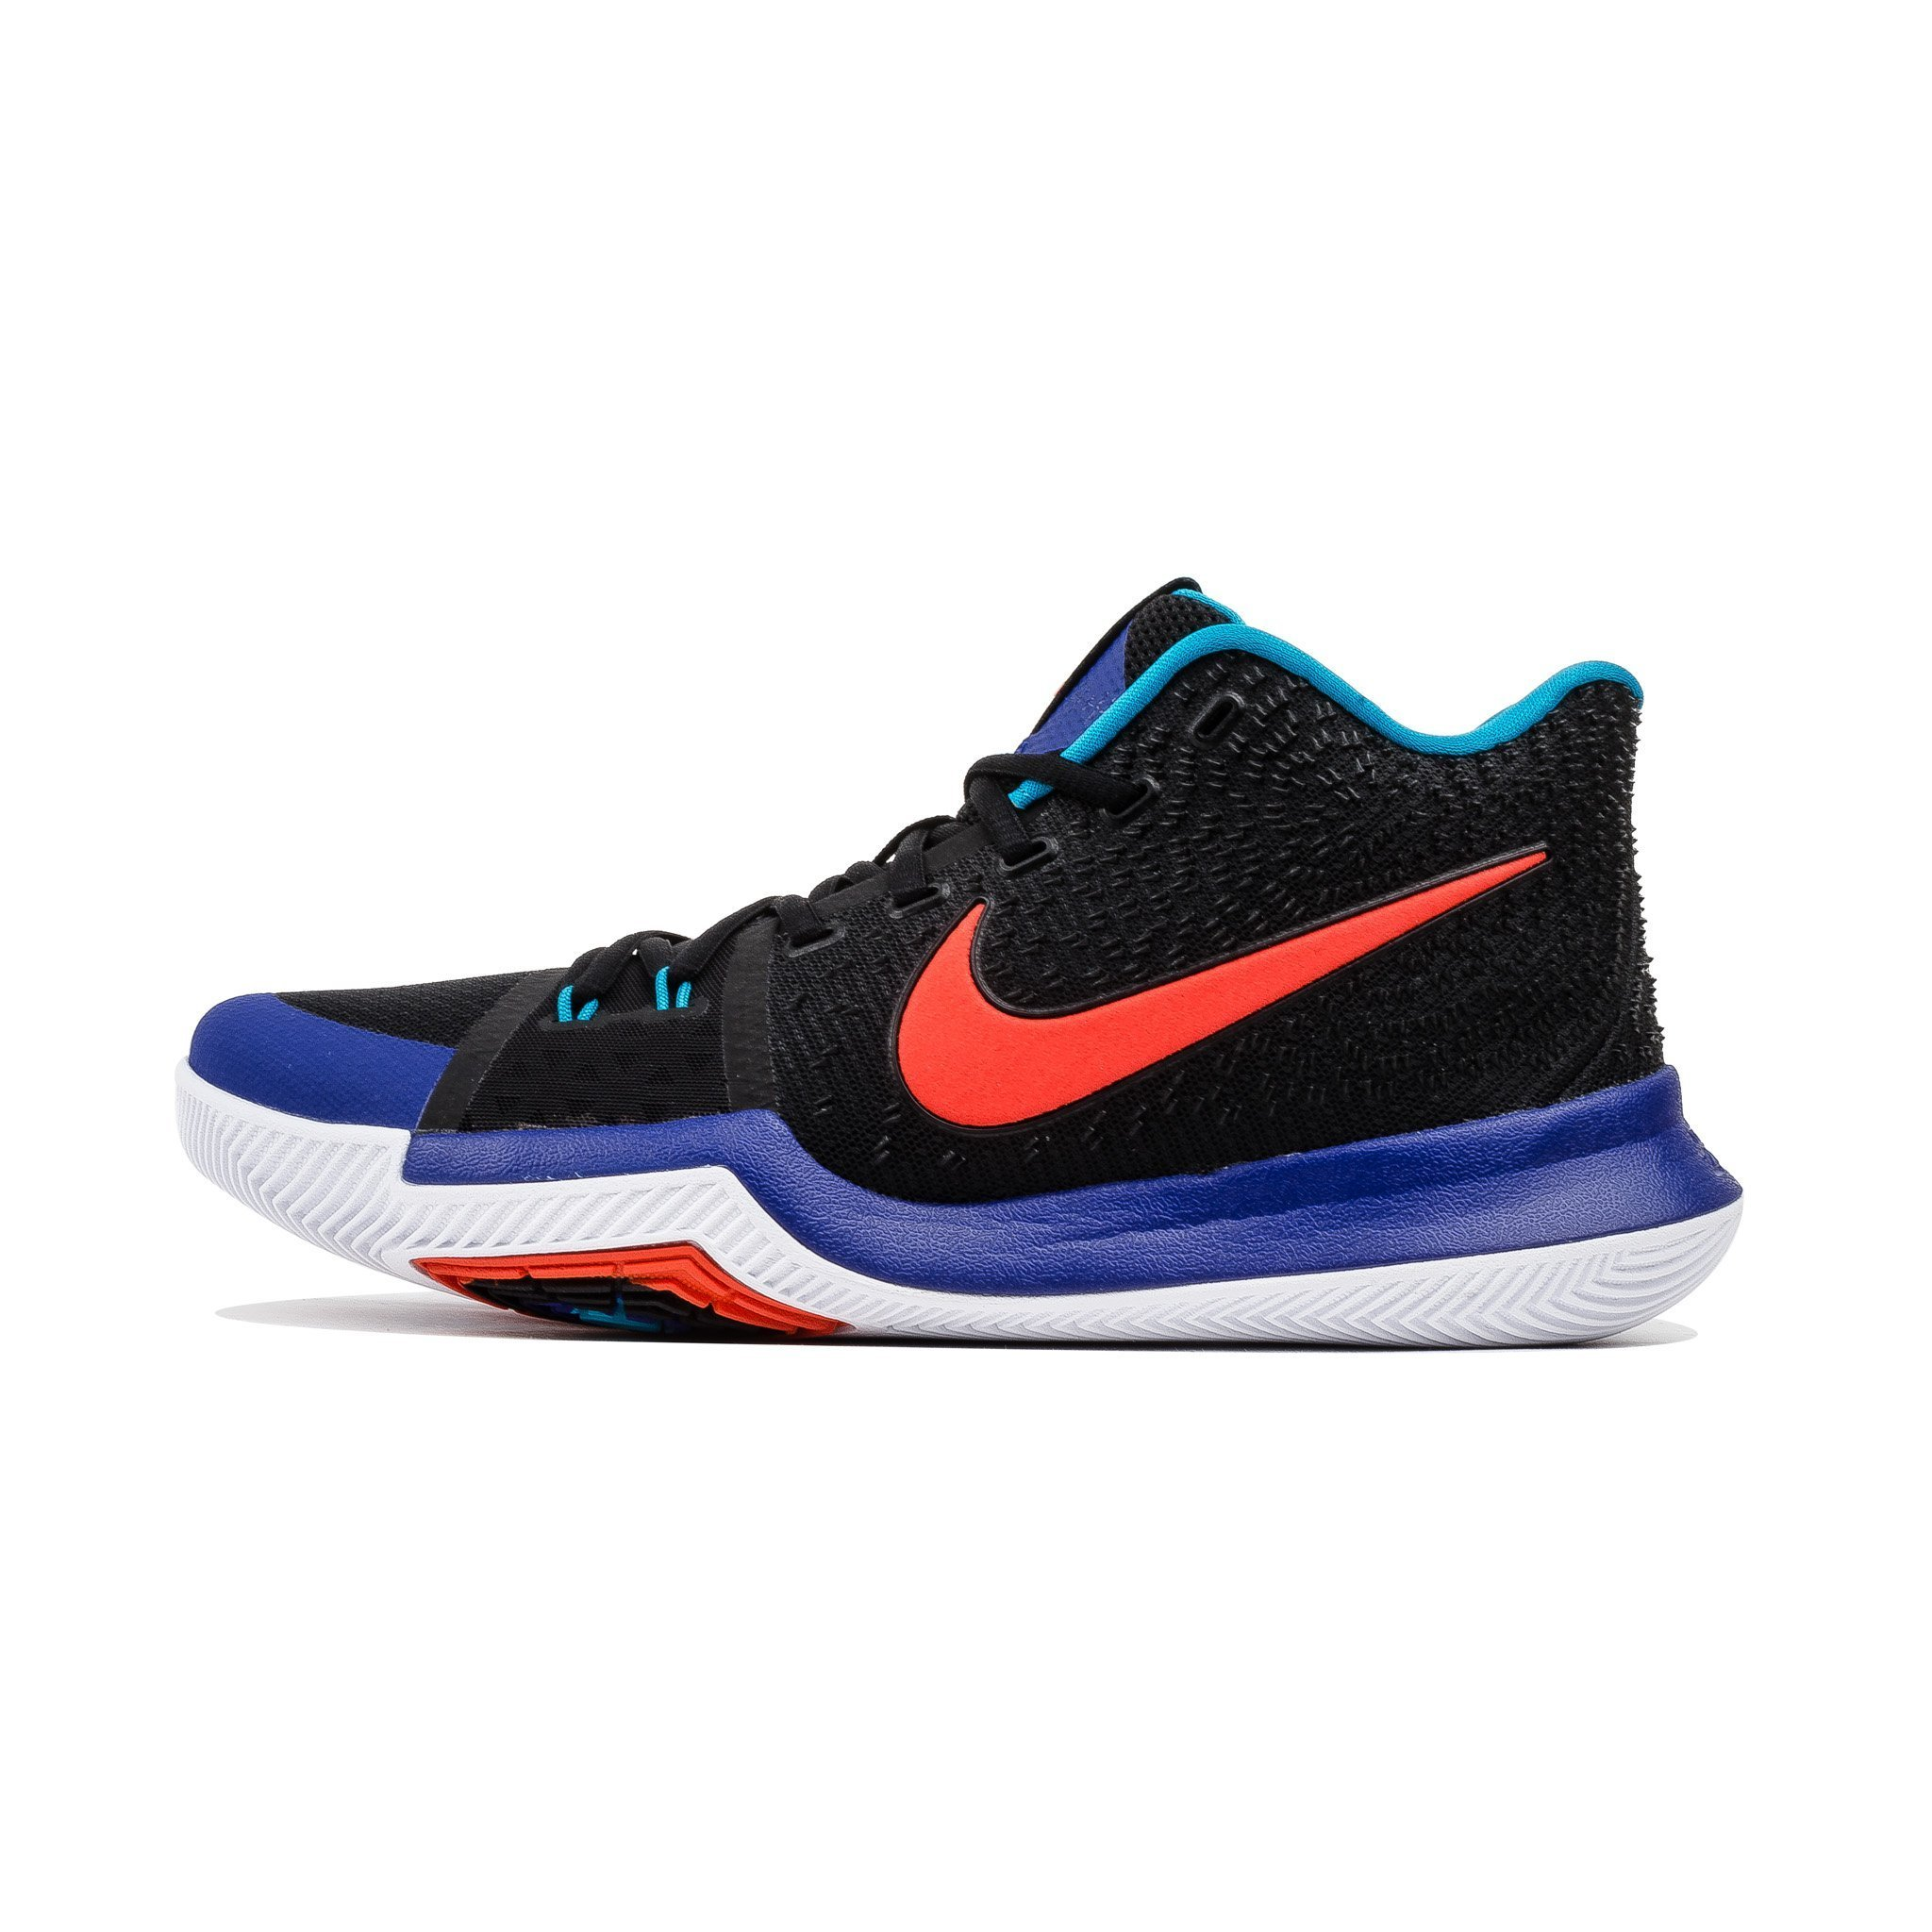 c5b3b1a1d25 ... purchase mens nike kyrie 3 kyrache black team orange concord neo  turquoise 8523 aef31 3c1f7